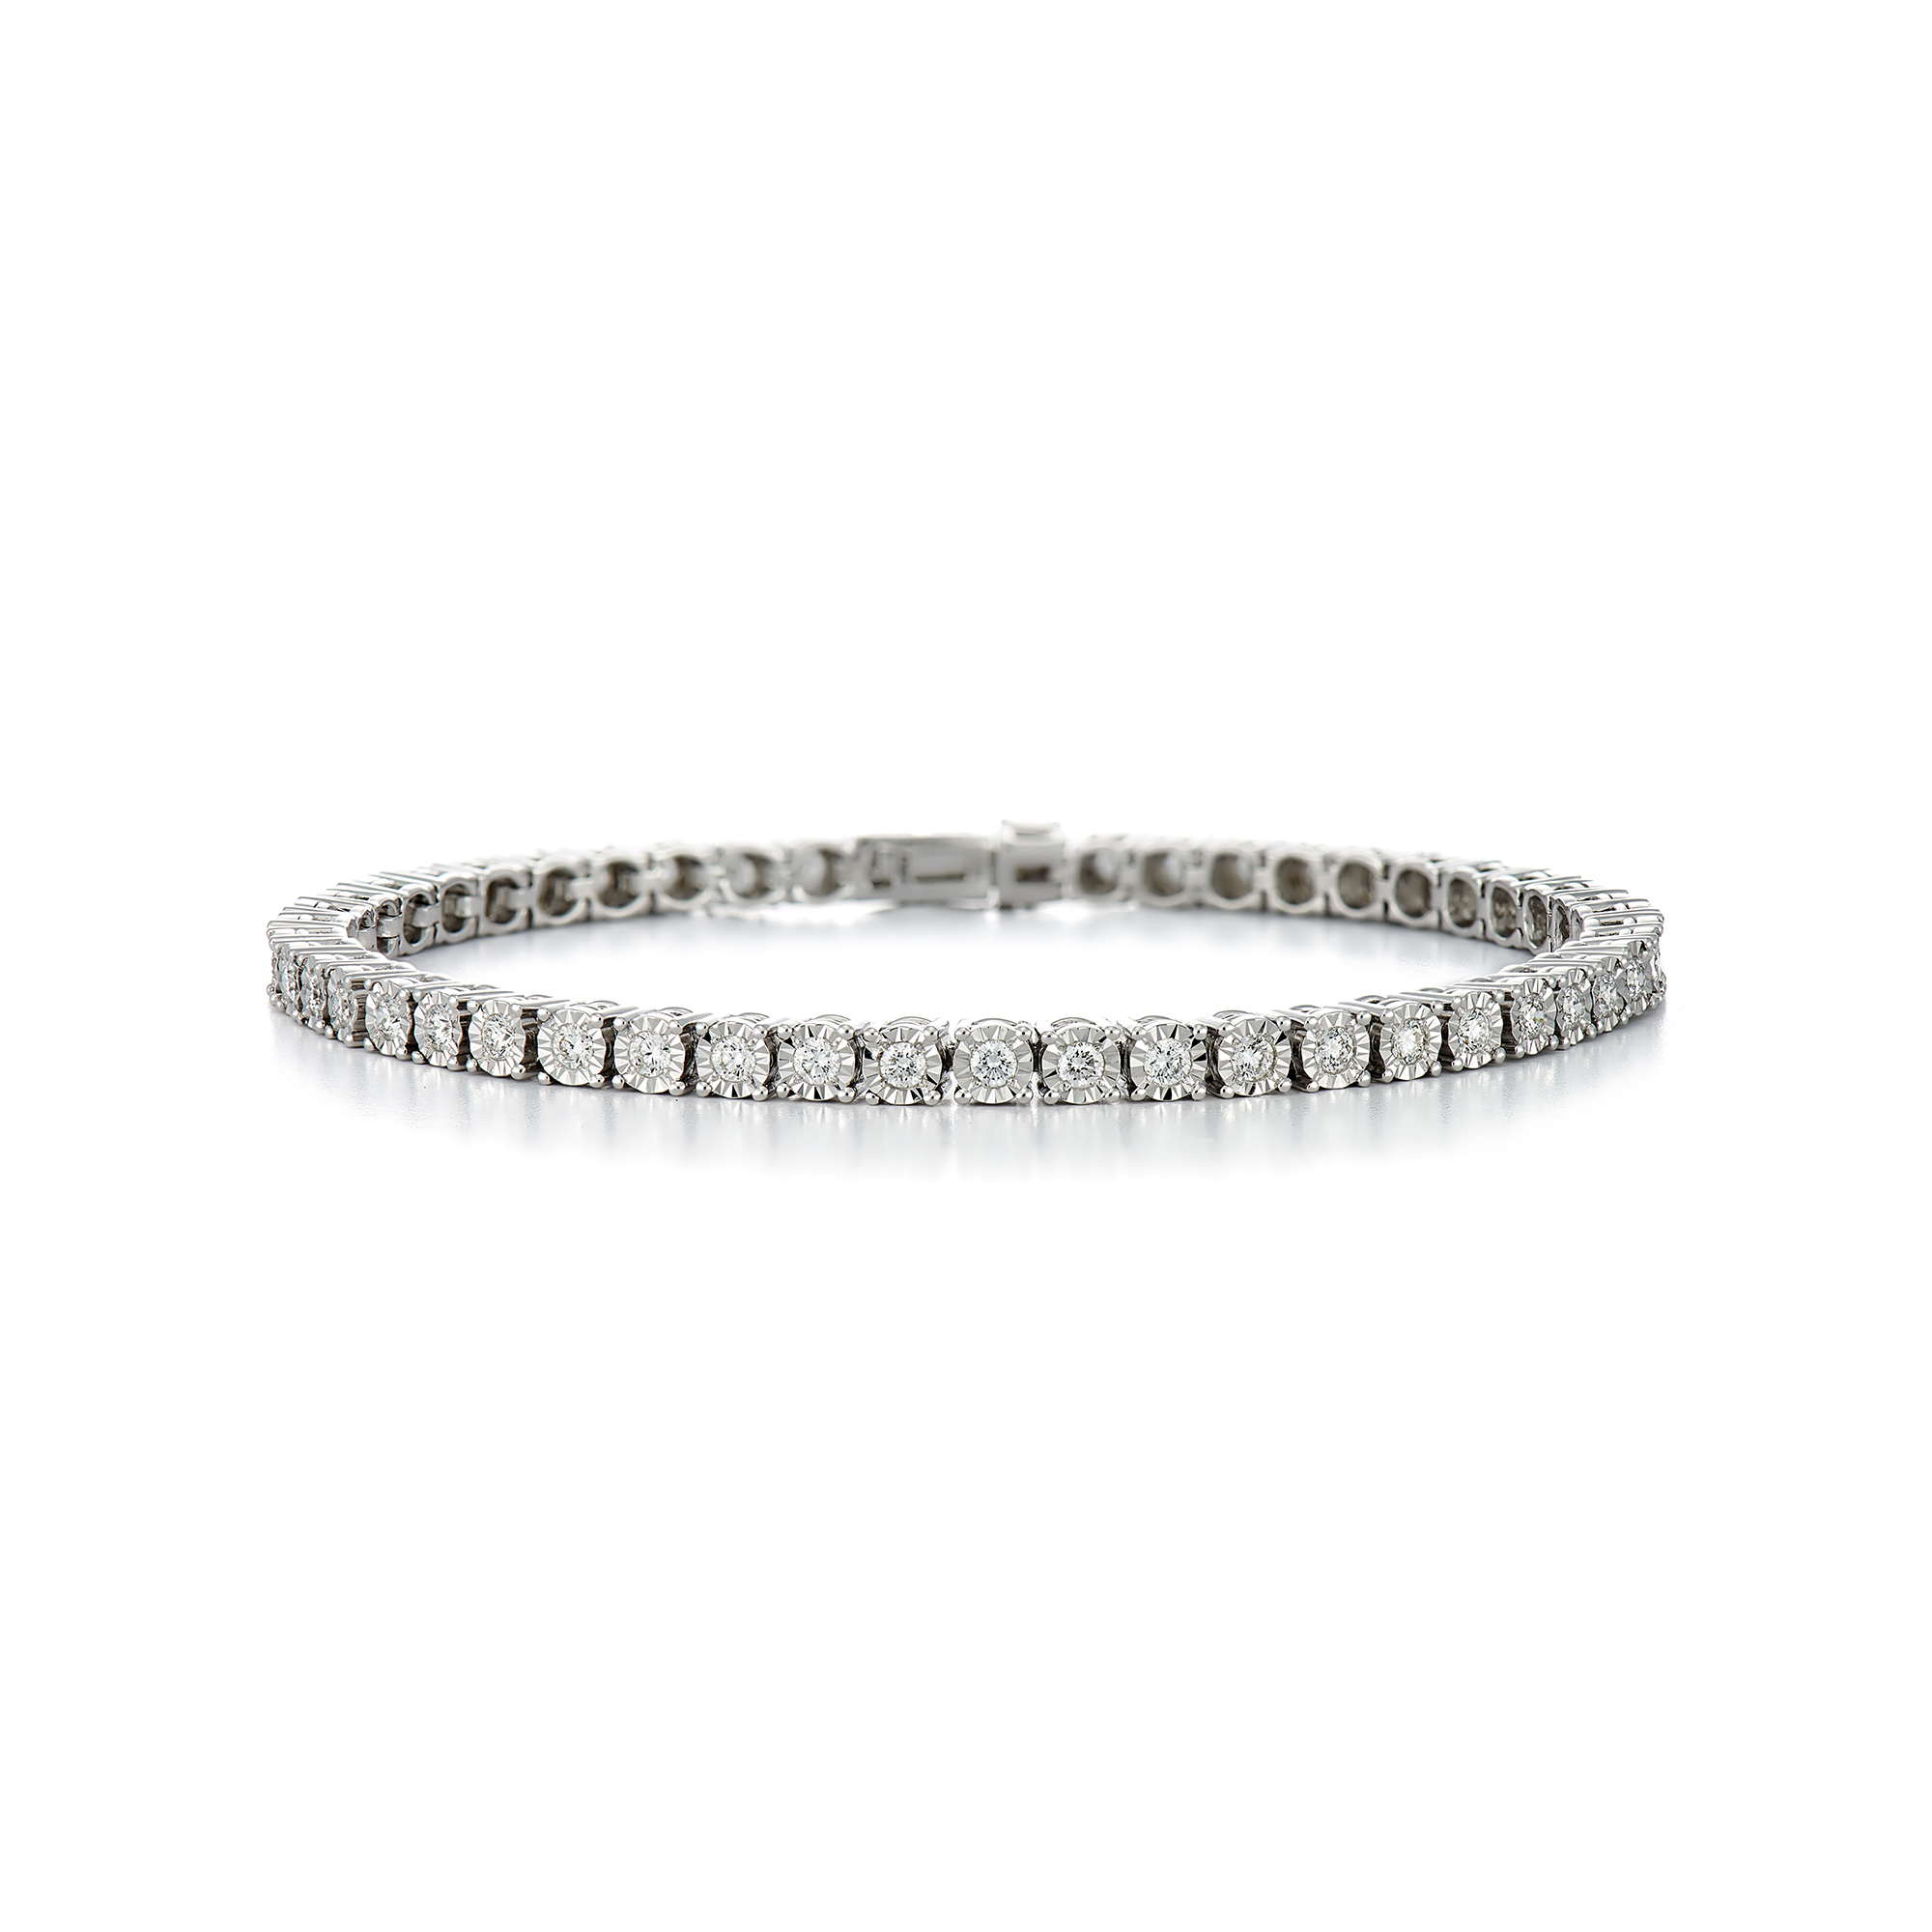 yg pave rg diamond polished bezel band set catalog rgyg bracelet